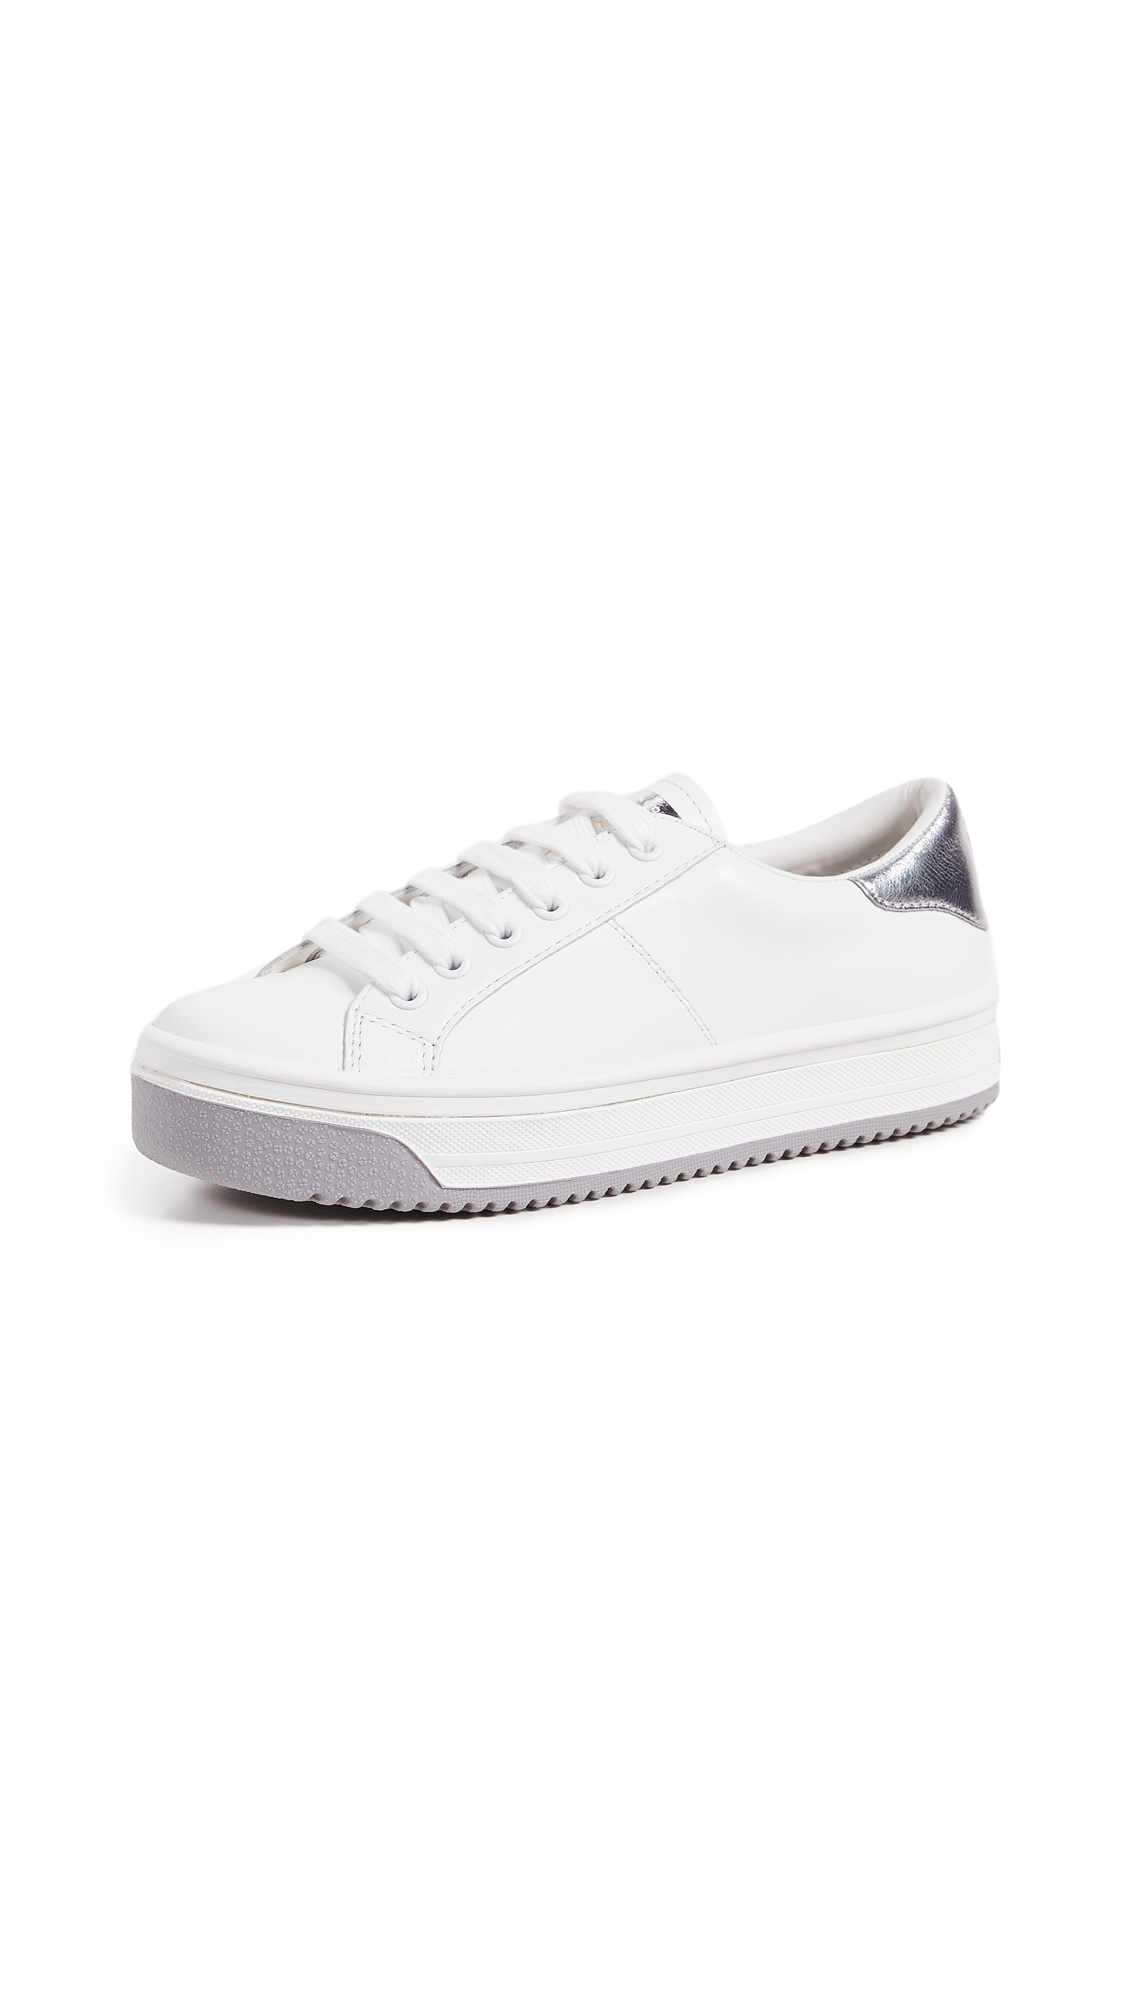 Marc Jacobs Empire Sneakers - White/Silver